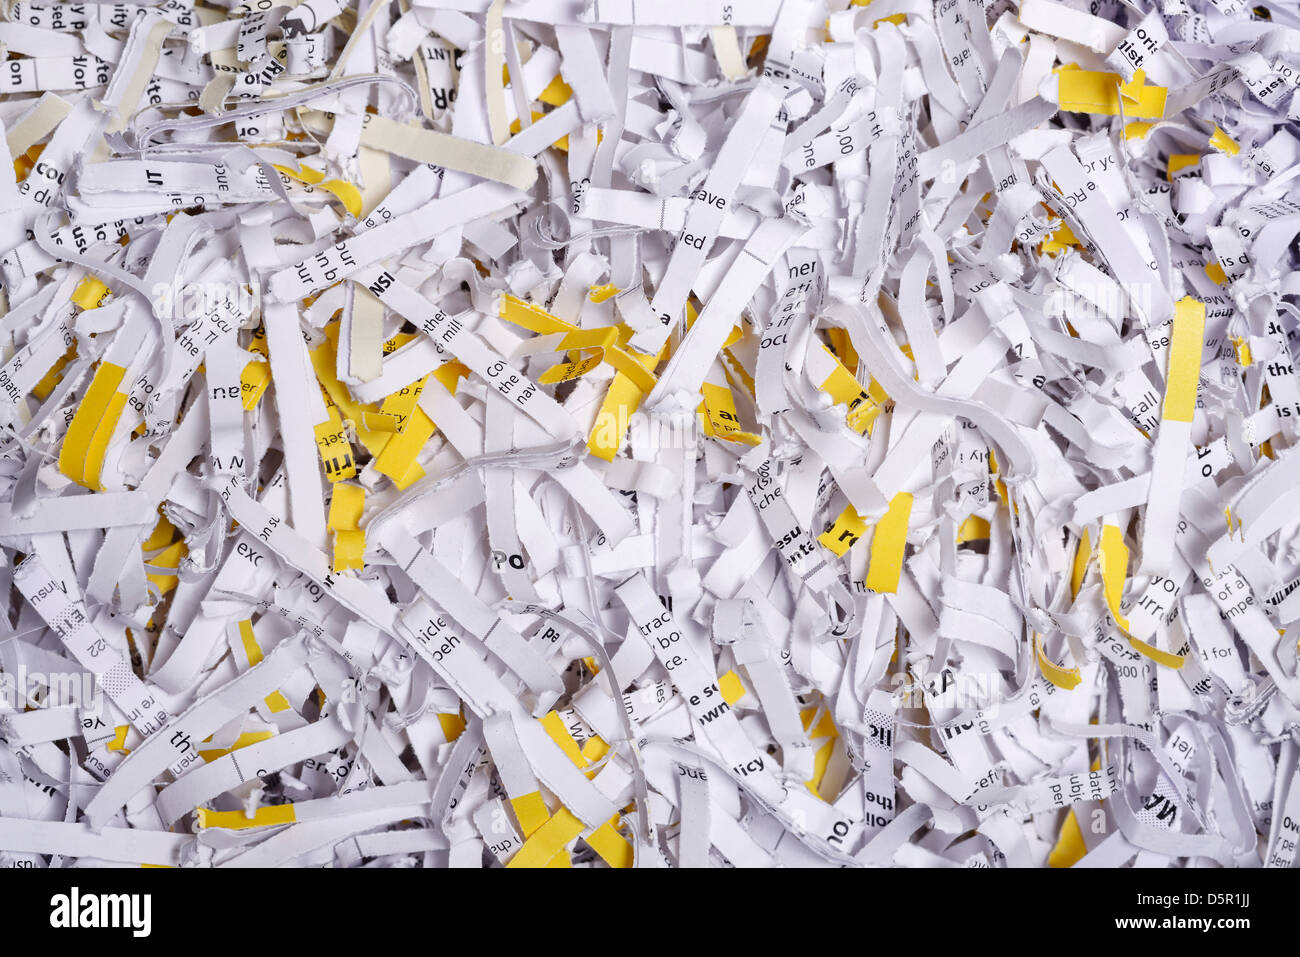 Close up detail of shredded paper - Stock Image